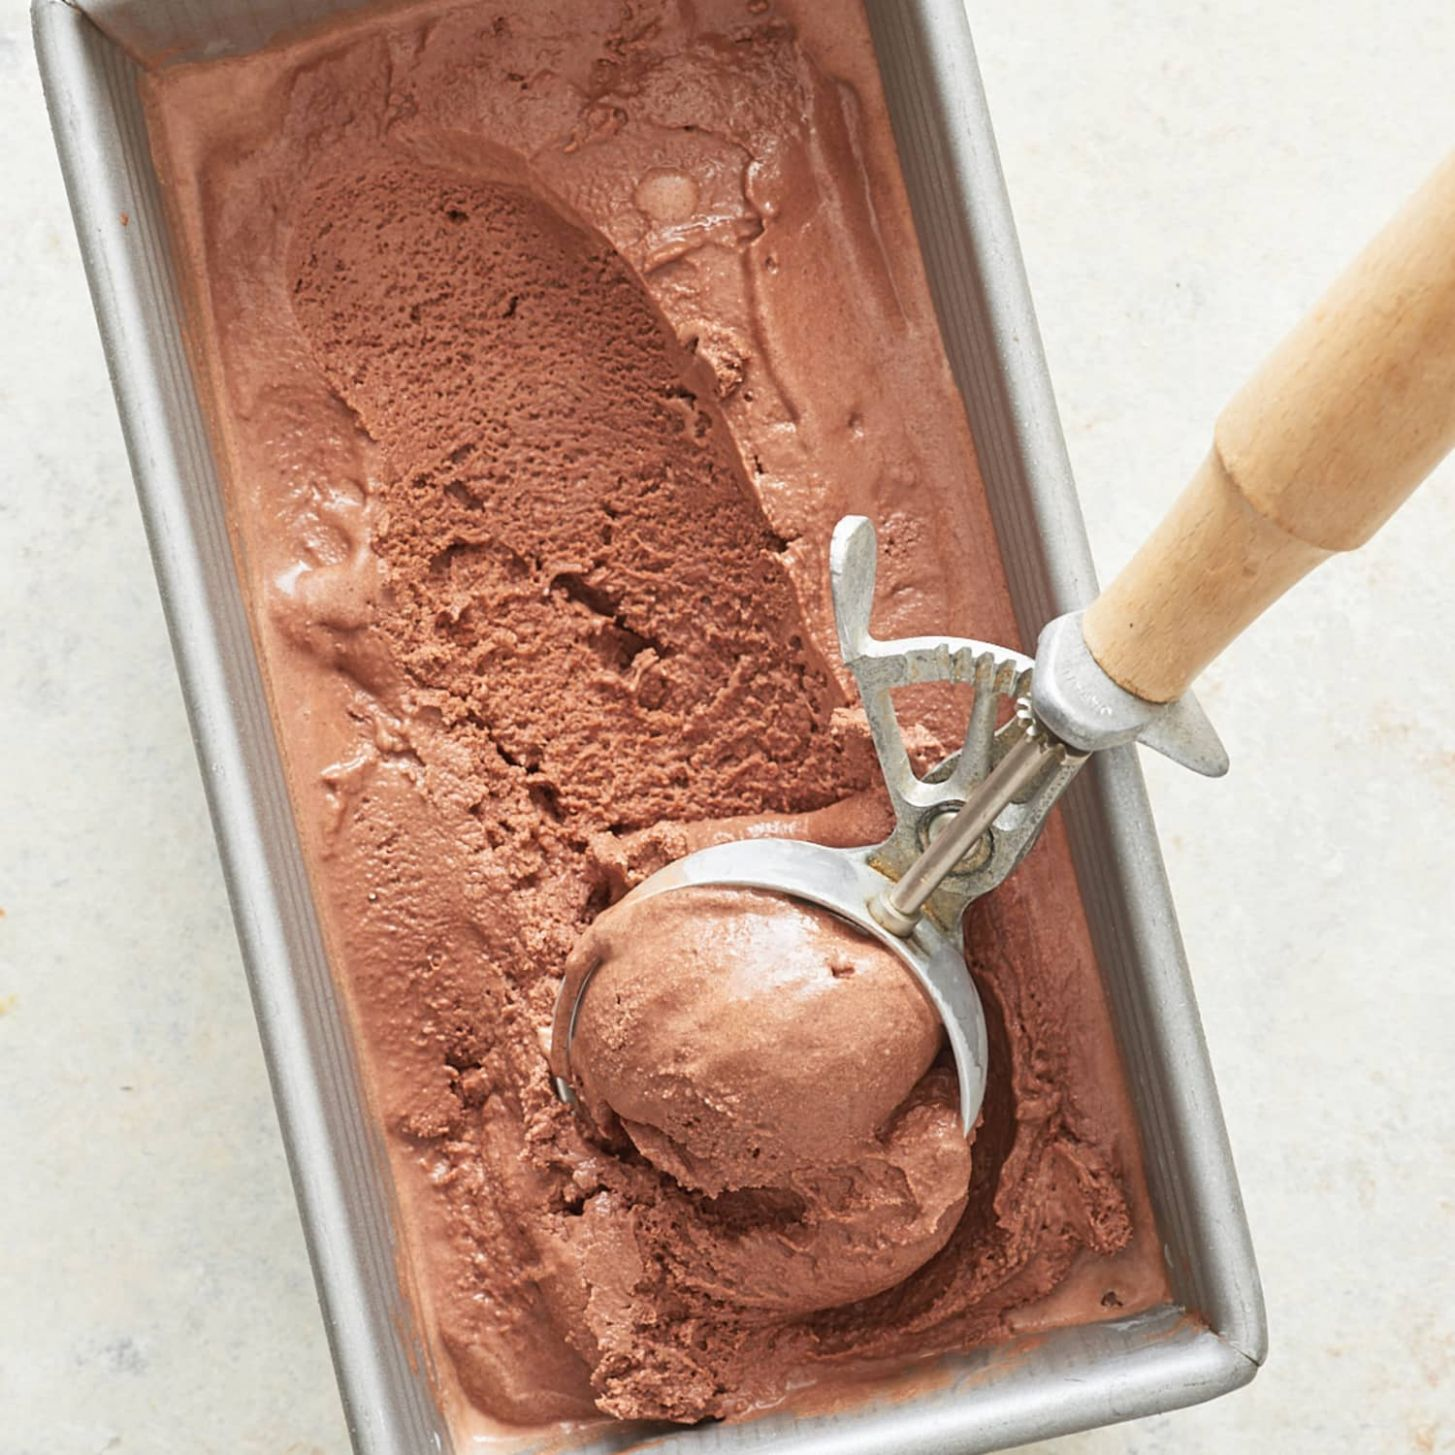 How To Make Chocolate Ice Cream - Recipes Chocolate Ice Cream